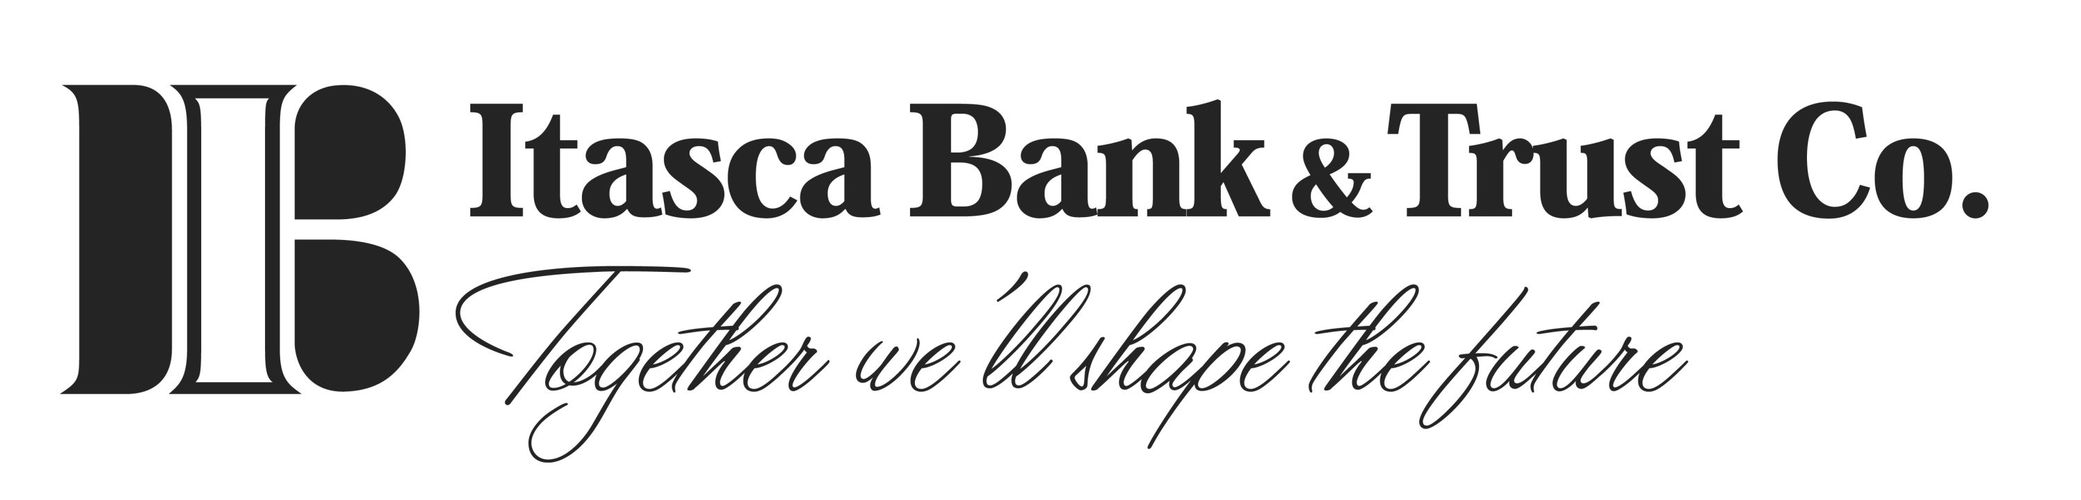 Itasca Bank & Trust Co.